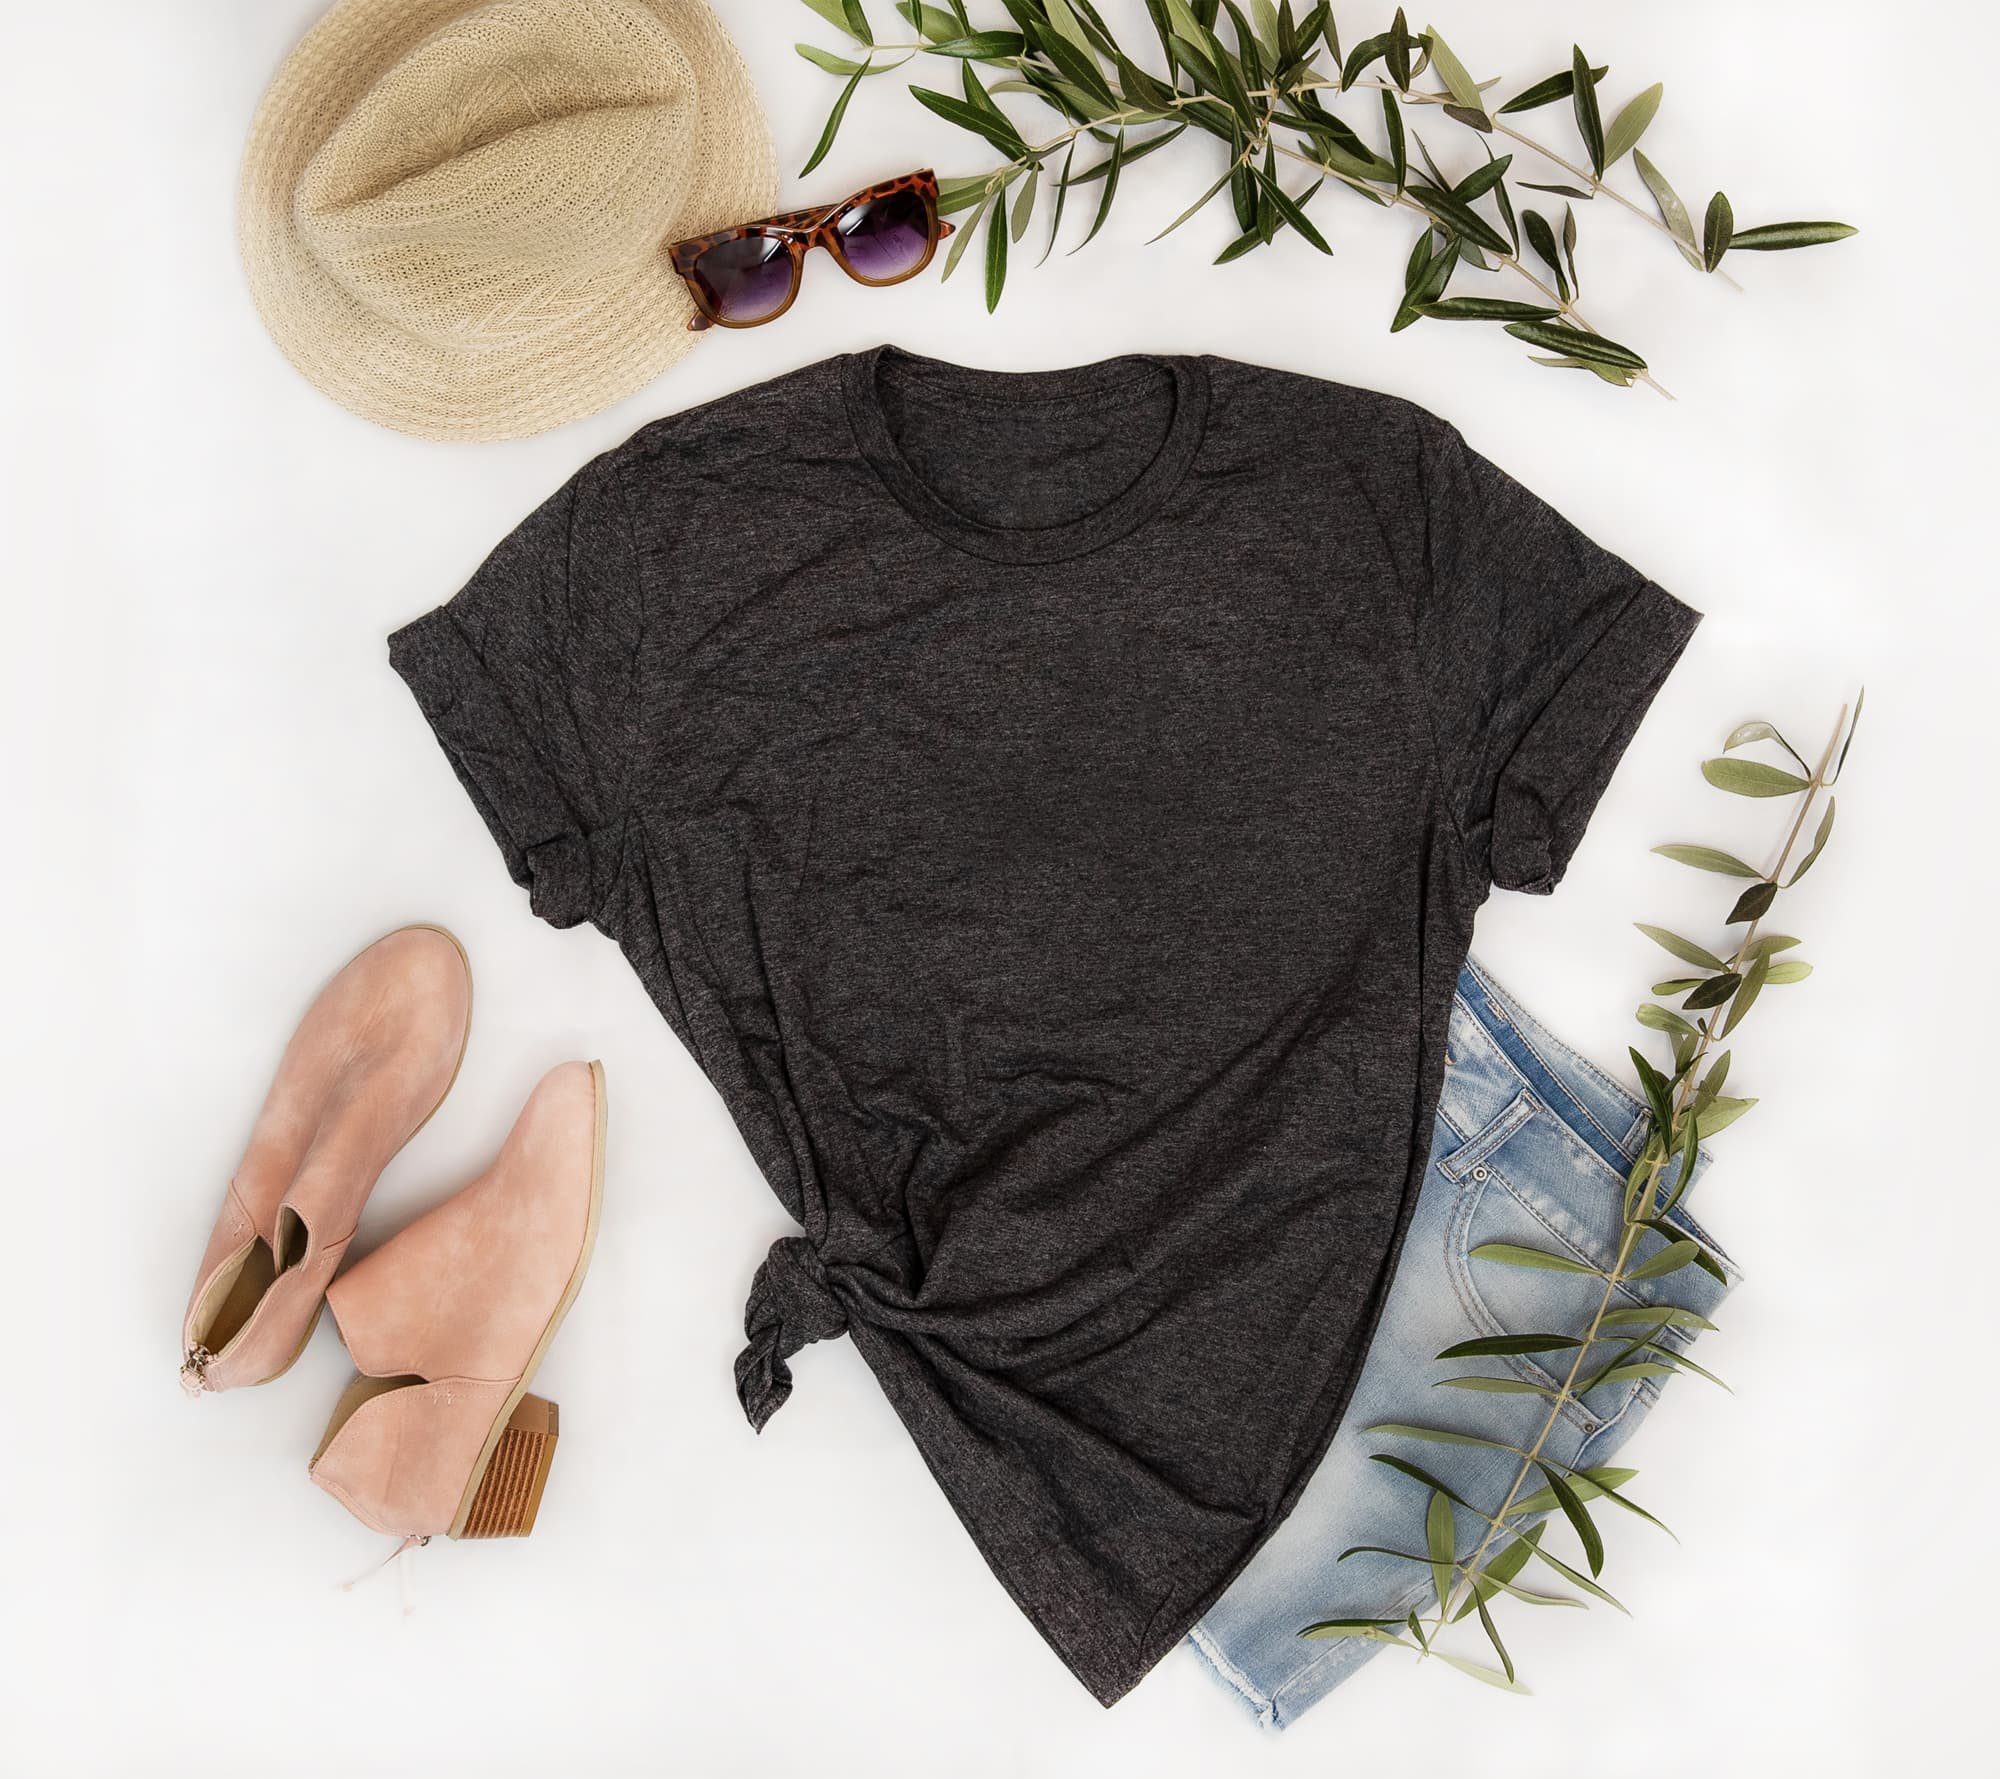 Apparel photography - flat lay of adult outfit